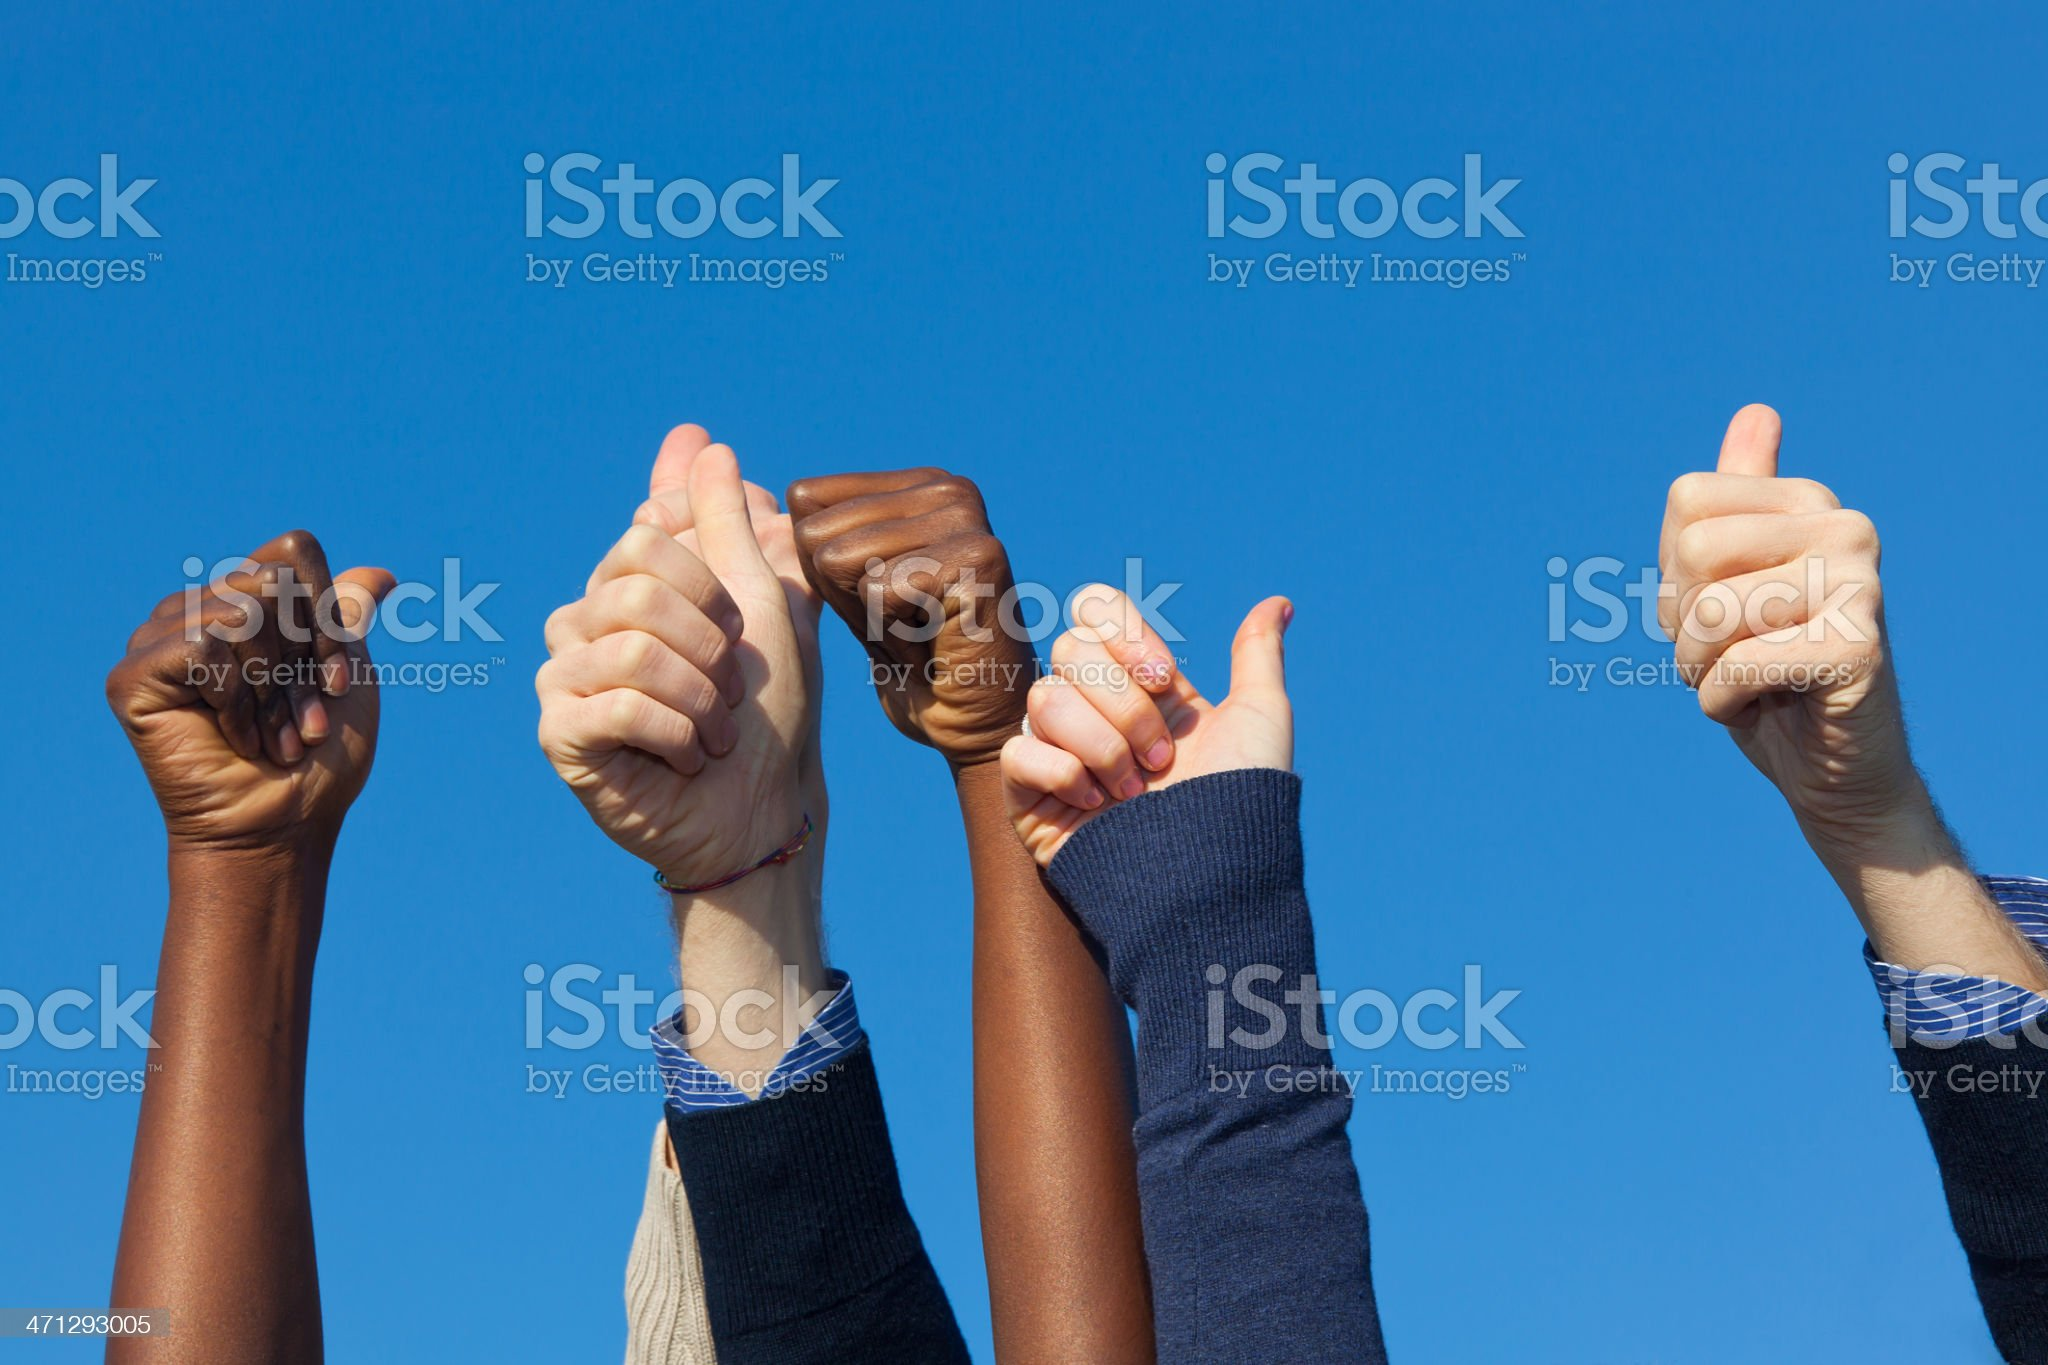 Multiracial Thumbs Up Against Blue Sky royalty-free stock photo